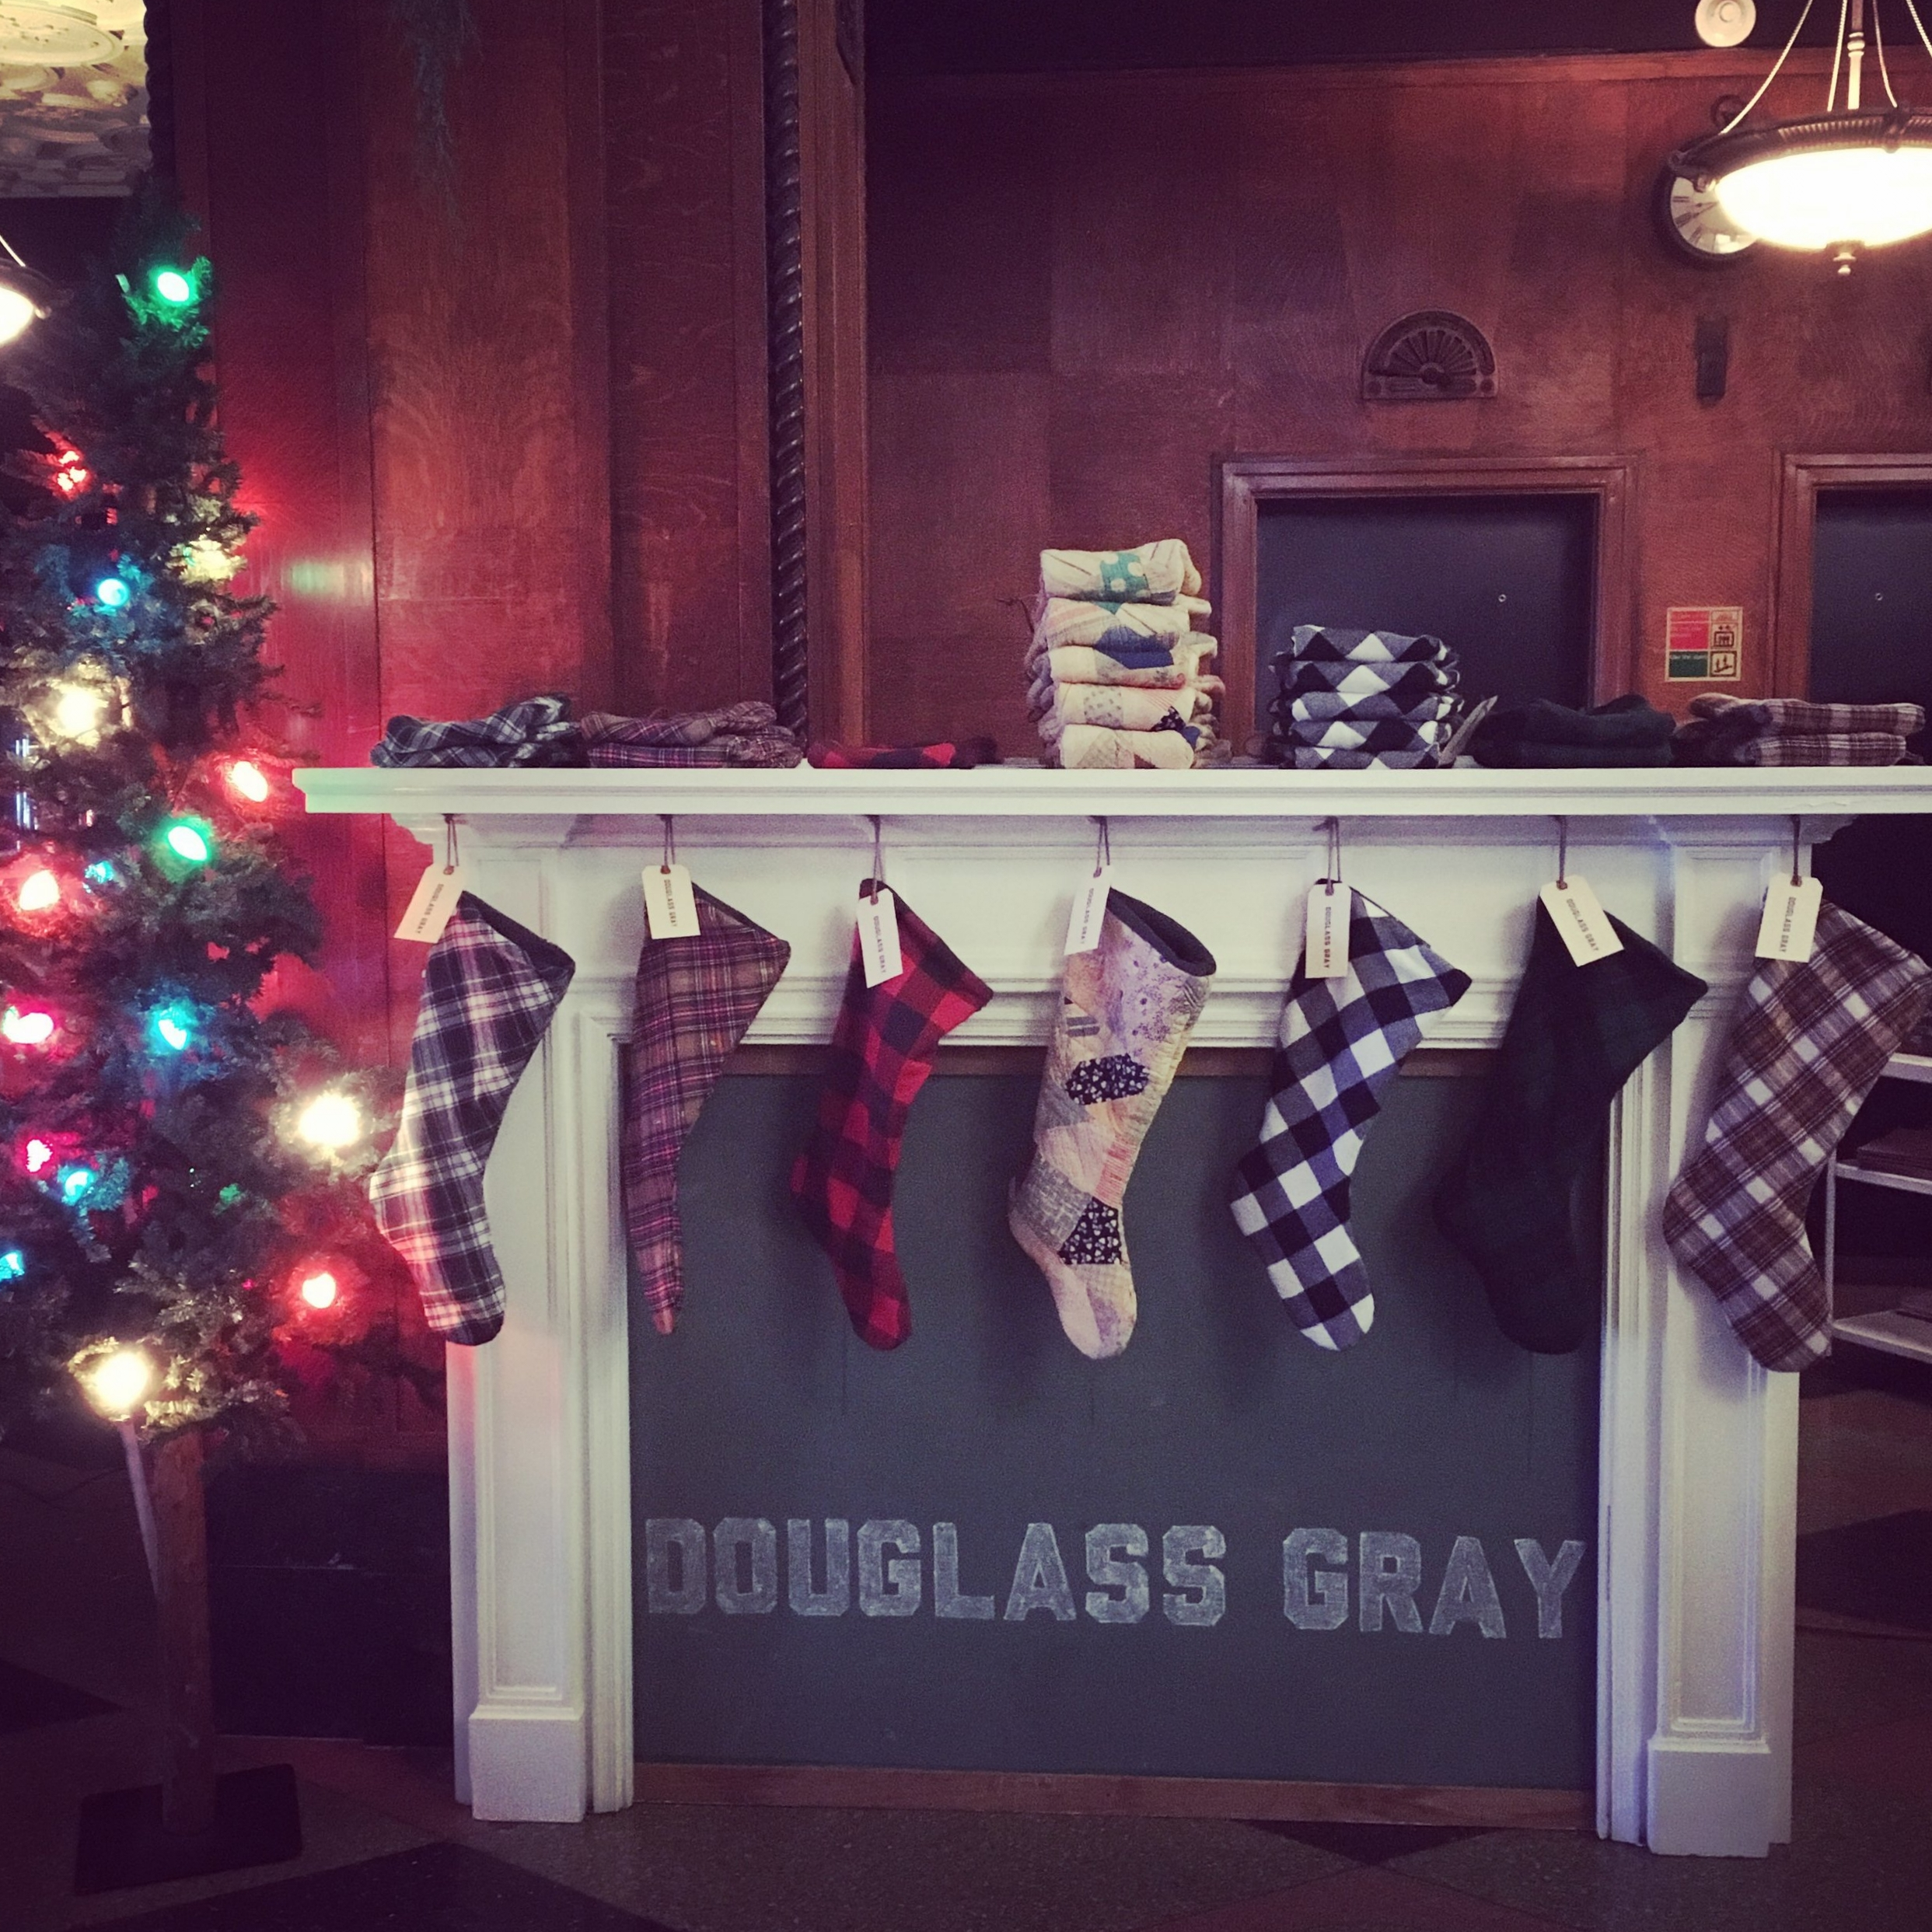 We loved these homemade stockings from the husband and wife team,Douglass Gray.